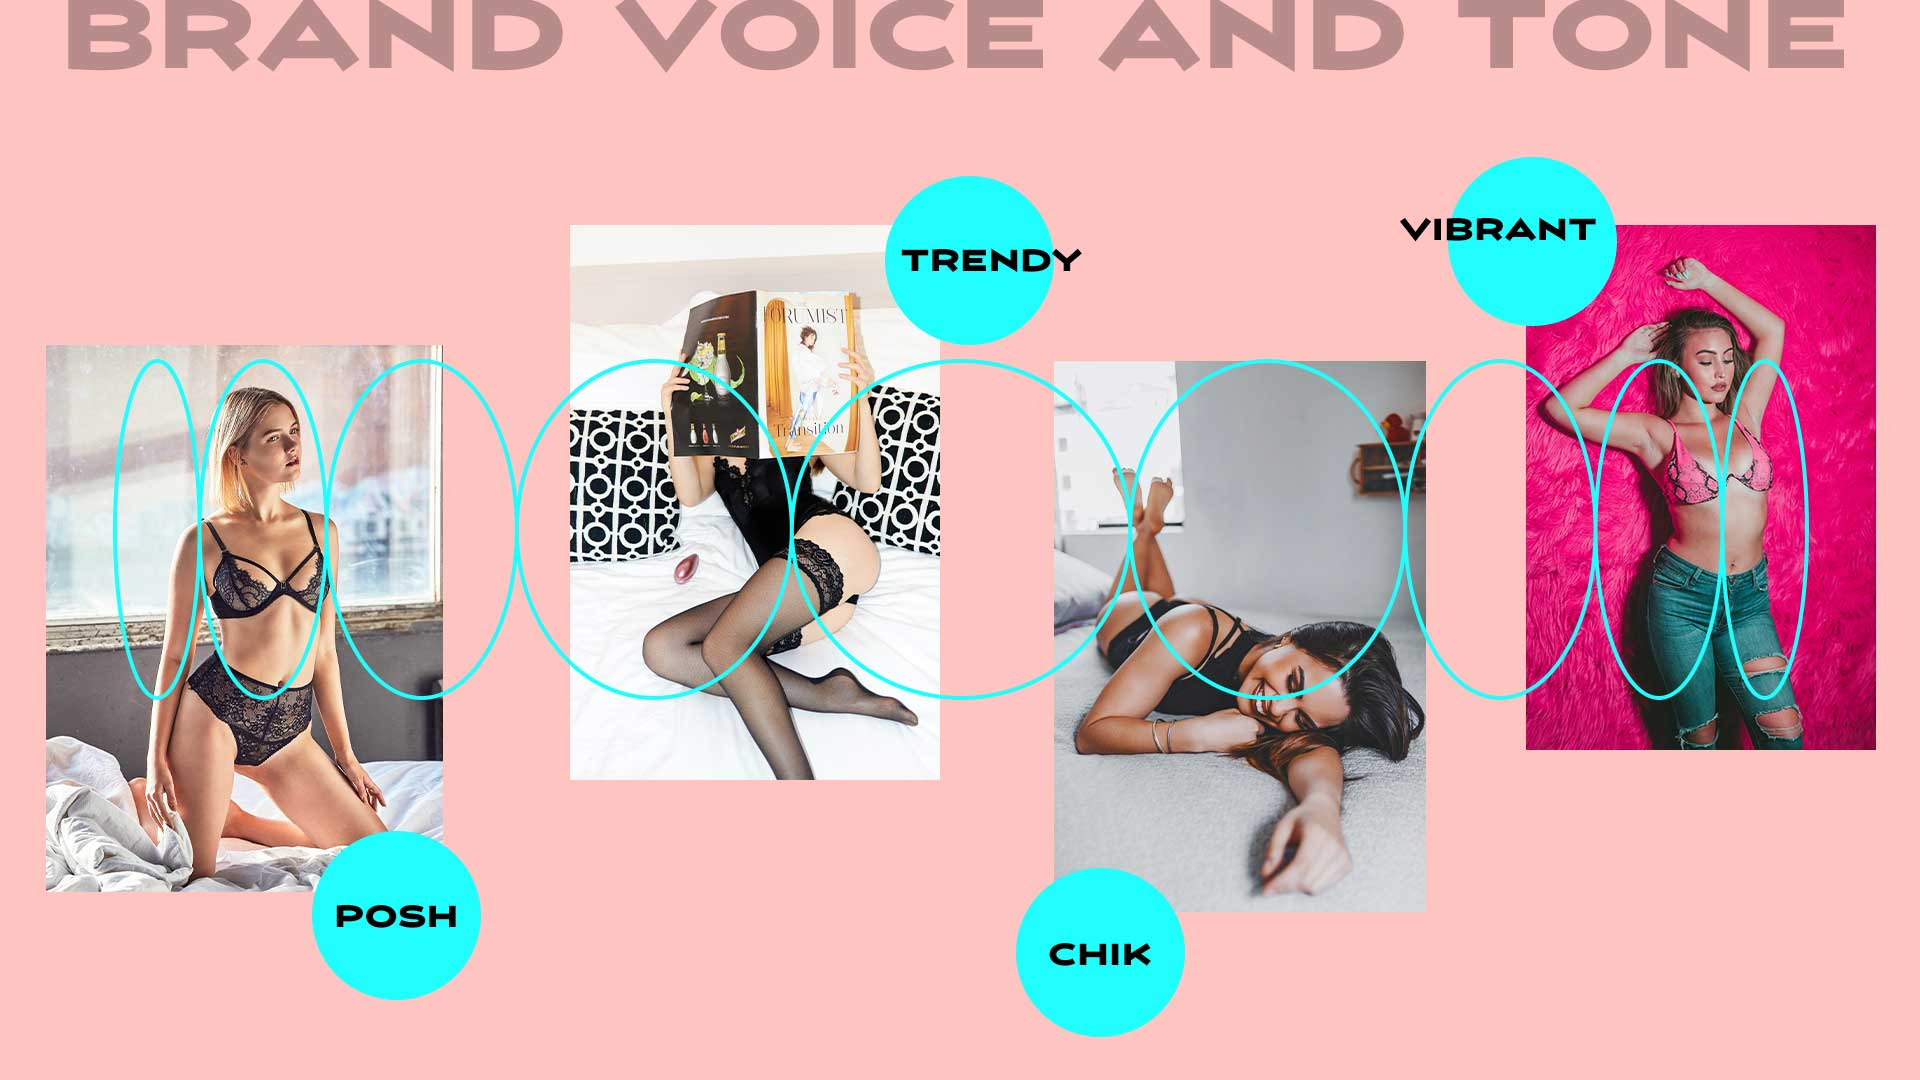 The Fashion Net Brand Voice and Tone